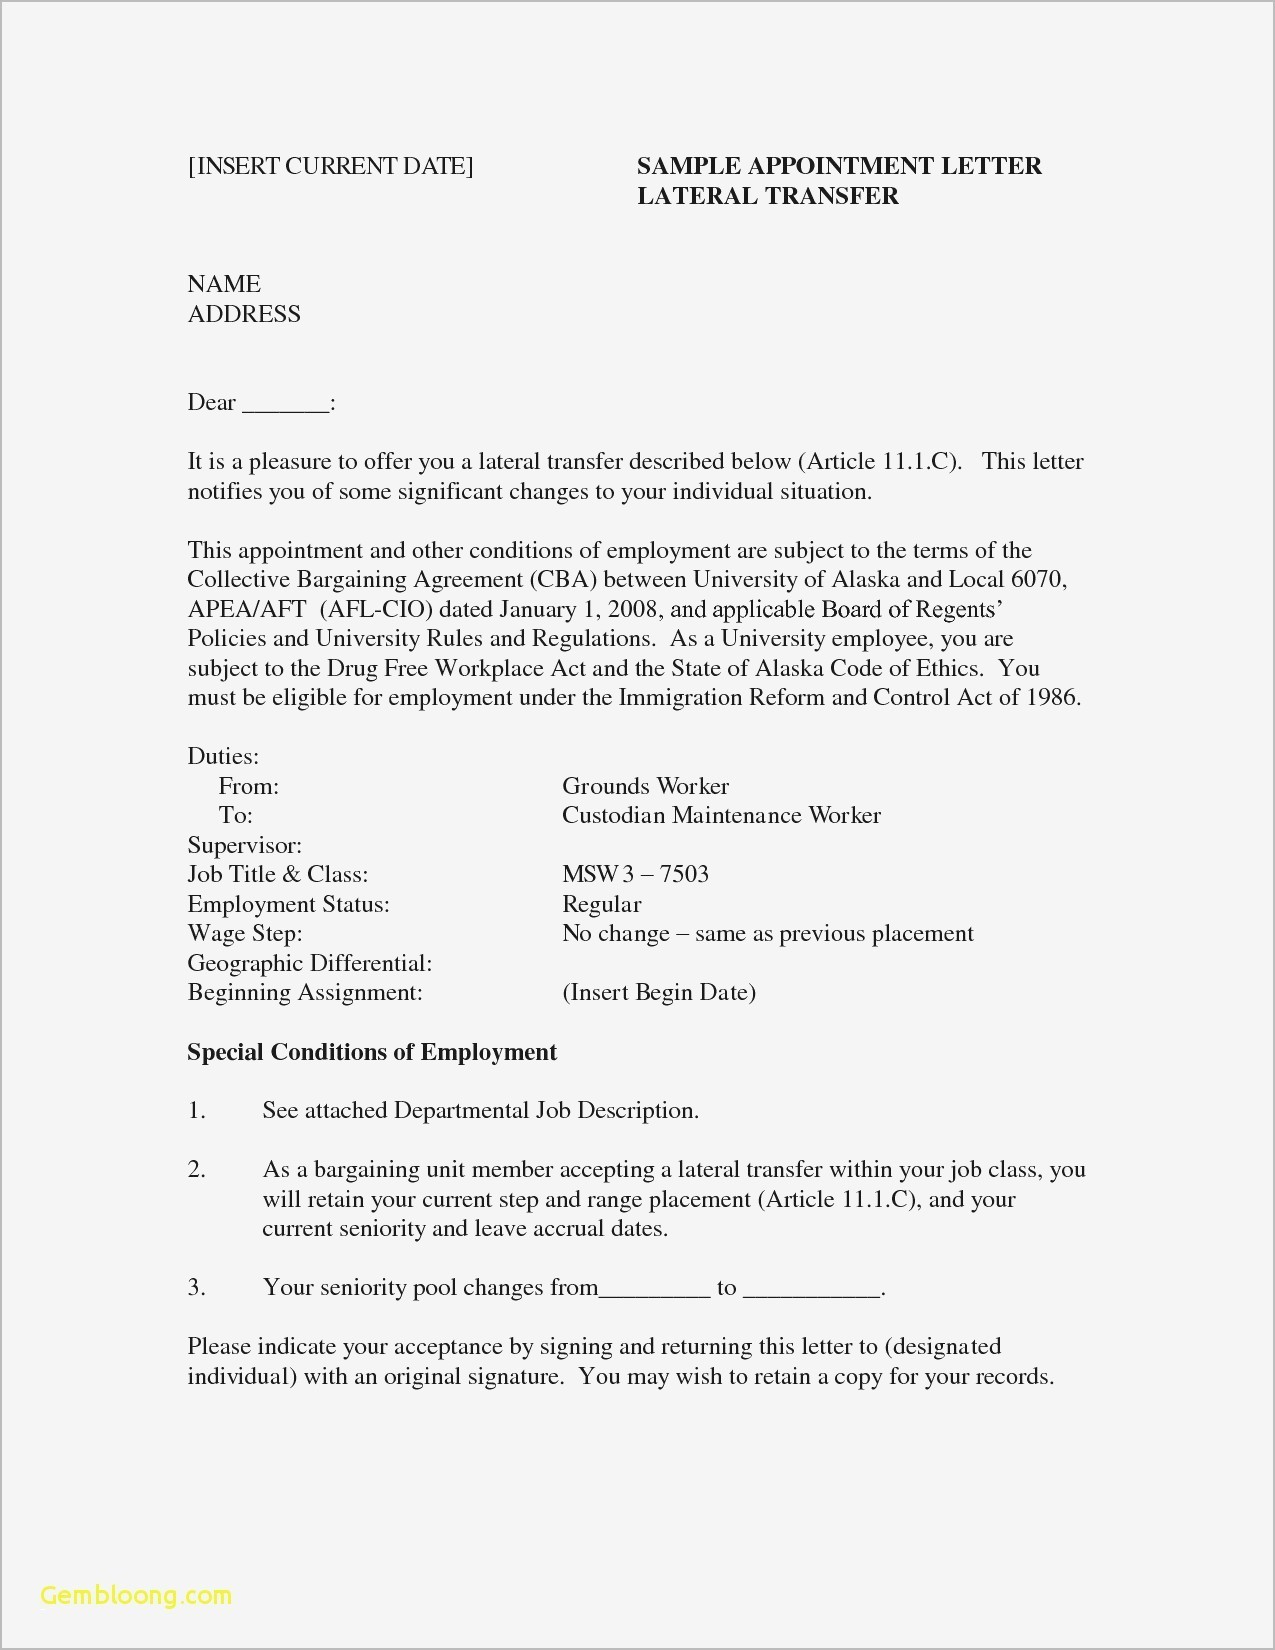 theater resume template example-Theatre resume template inspirational best actor resume unique actor resumes 0d acting resume format 3-c